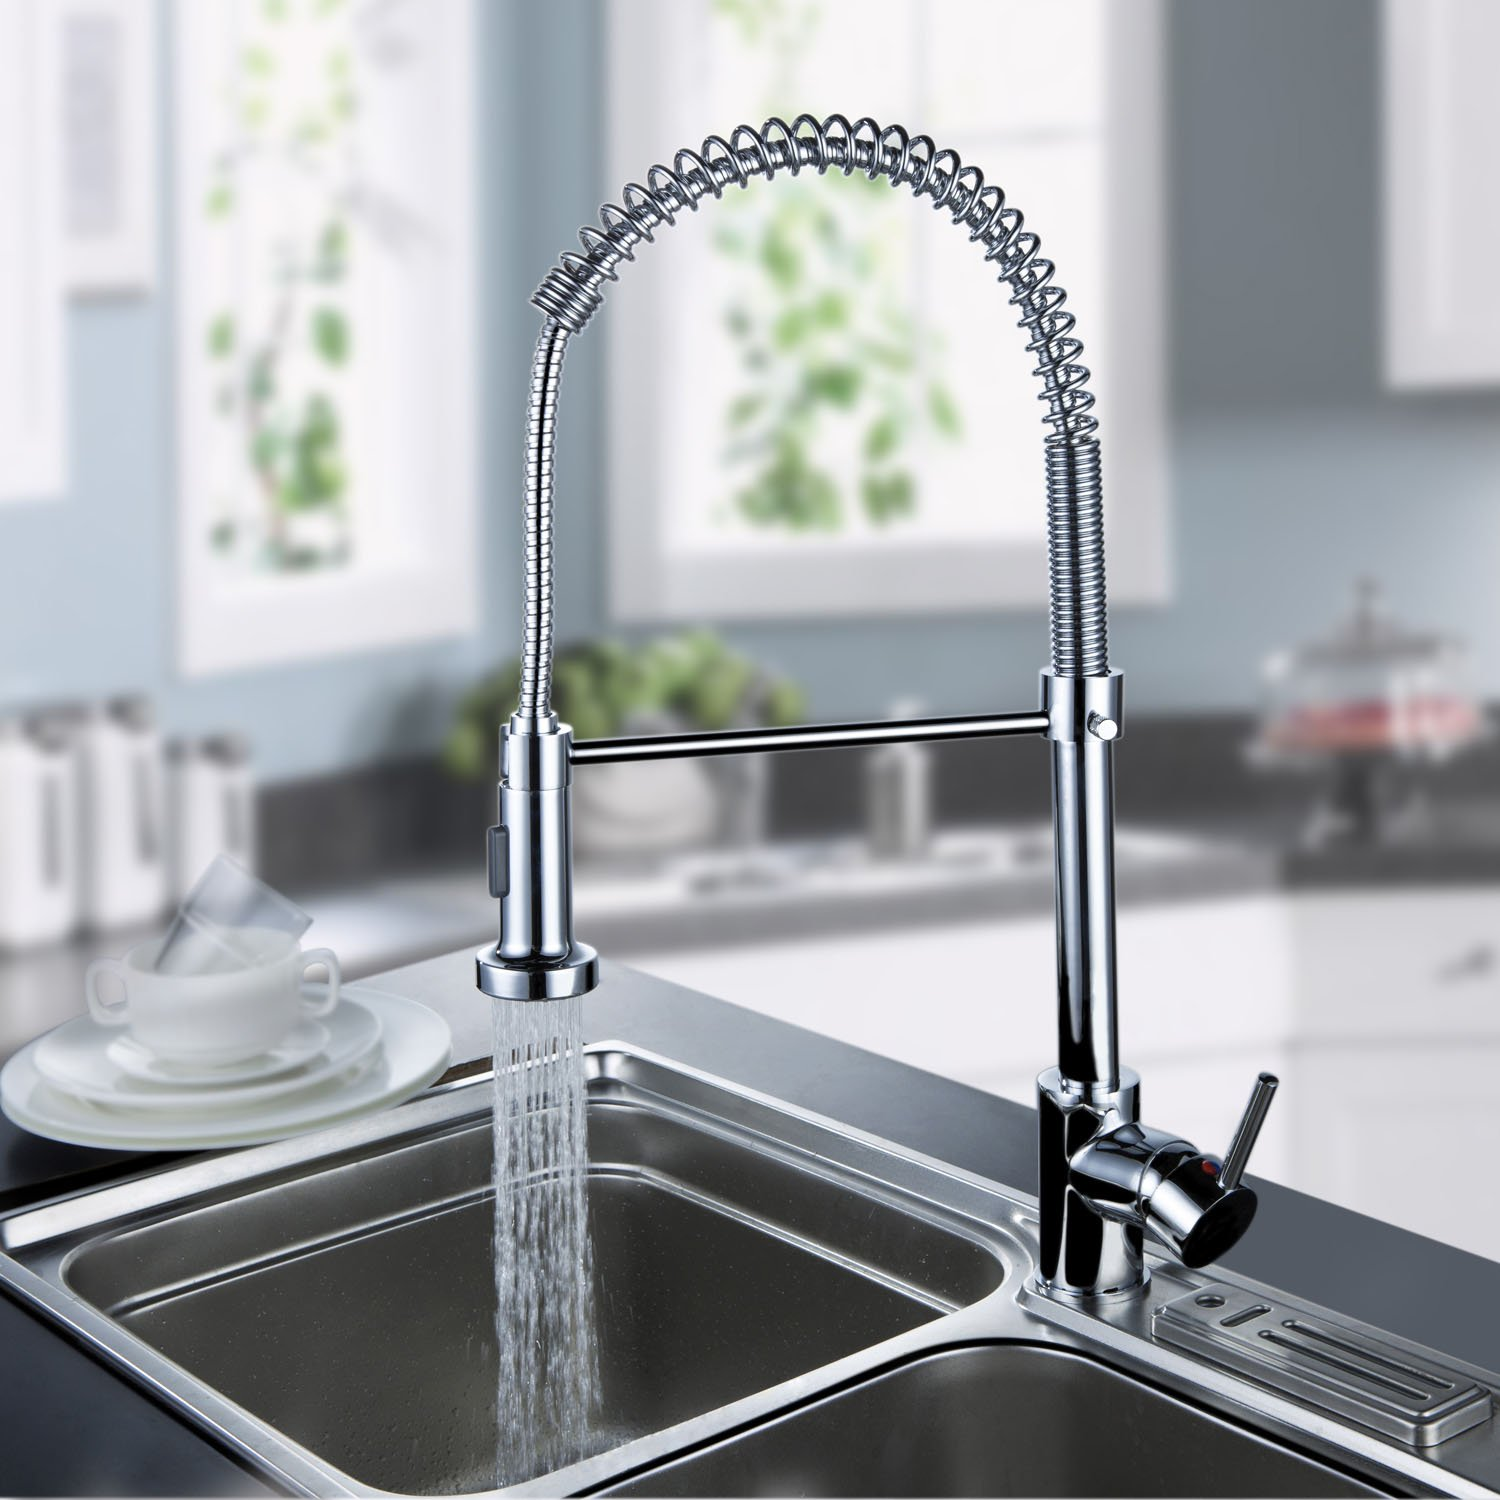 Lightinthebox Deck Mount Contemporary Spring Kitchen Sink Faucet ...